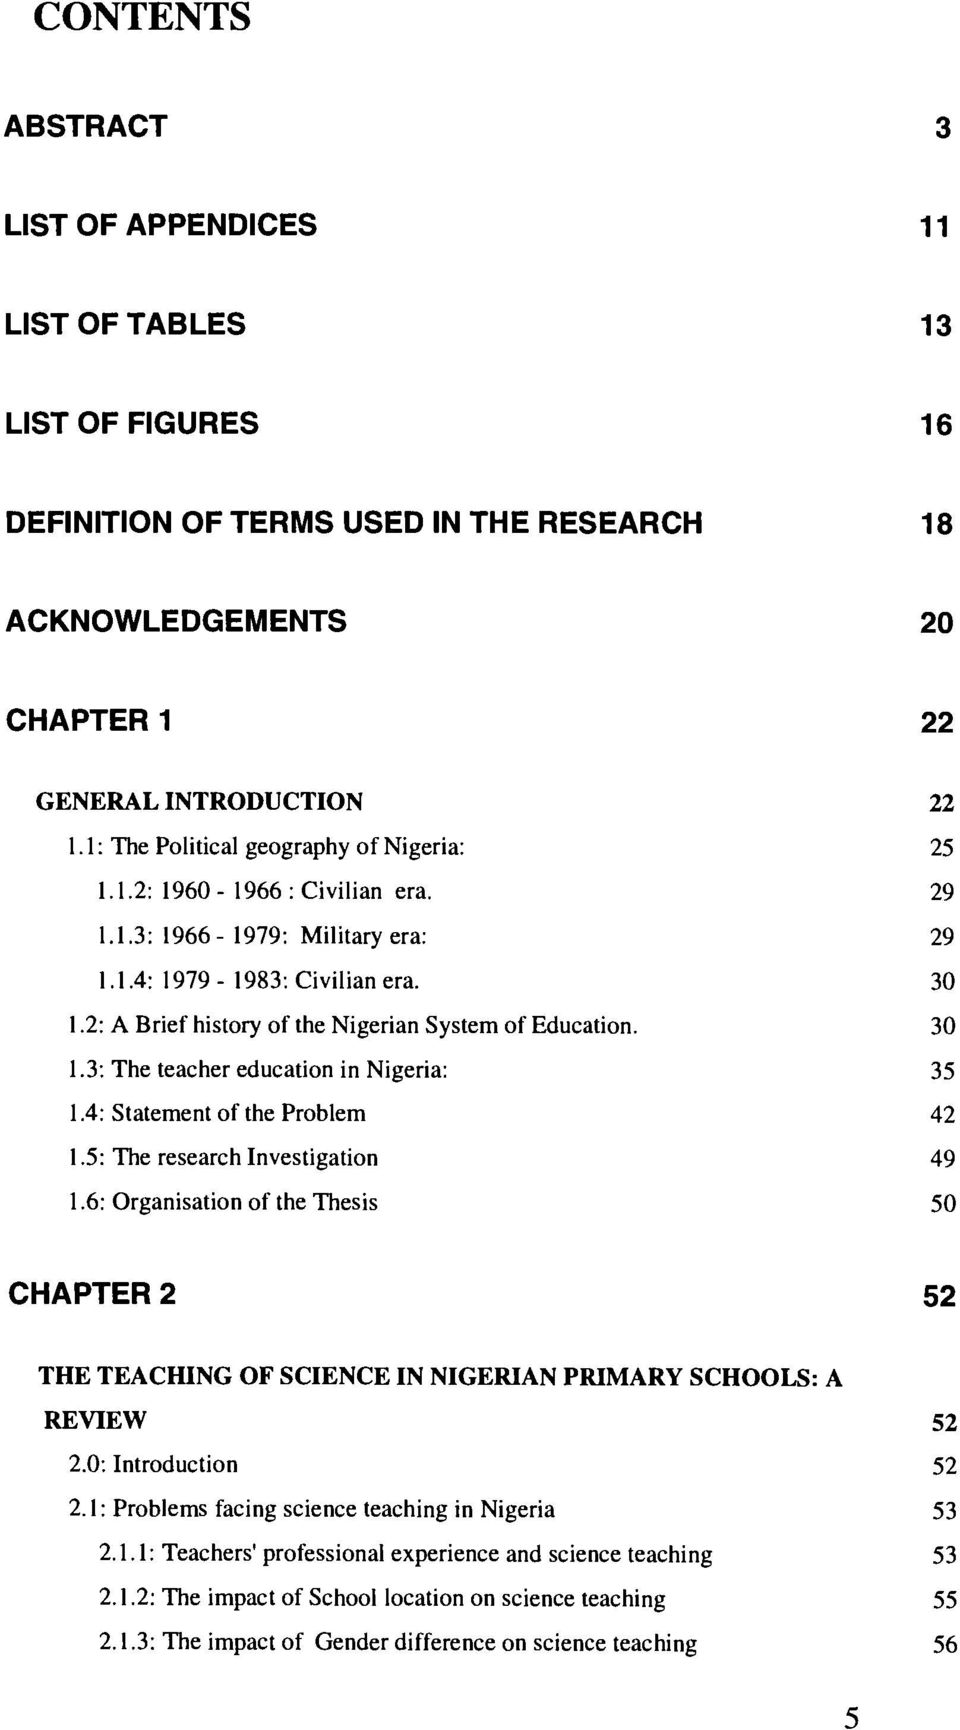 2: A Brief history of the Nigerian System of Education. 30 1.3: The teacher education in Nigeria: 35 1.4: Statement of the Problem 42 1.5: The research Investigation 49 1.